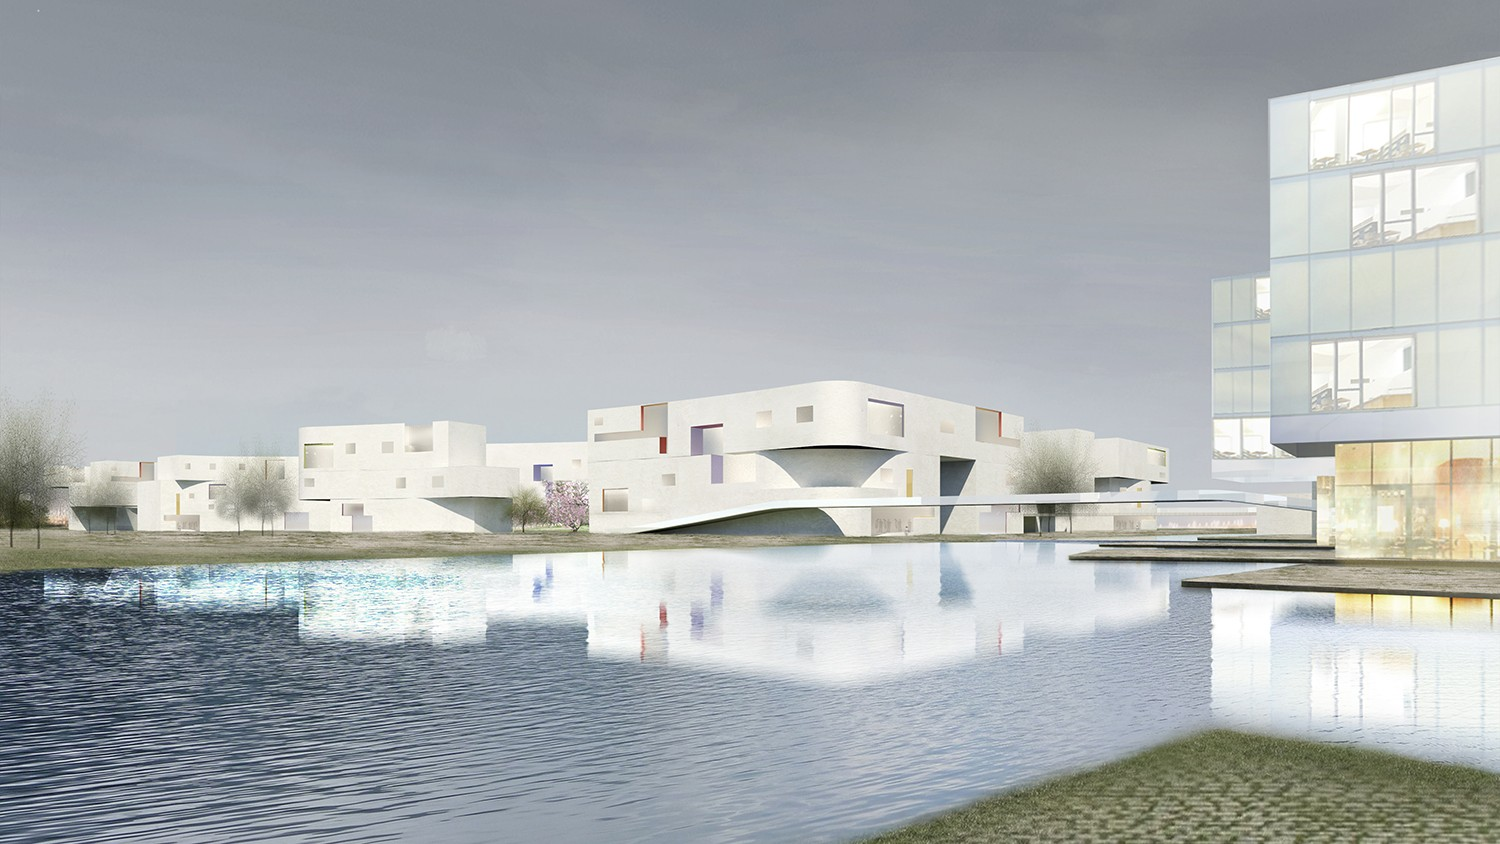 https://stevenholl.sfo2.digitaloceanspaces.com/uploads/projects/project-images/StevenHollArchitects_HybridC_Camera04Malleable_WH.jpg